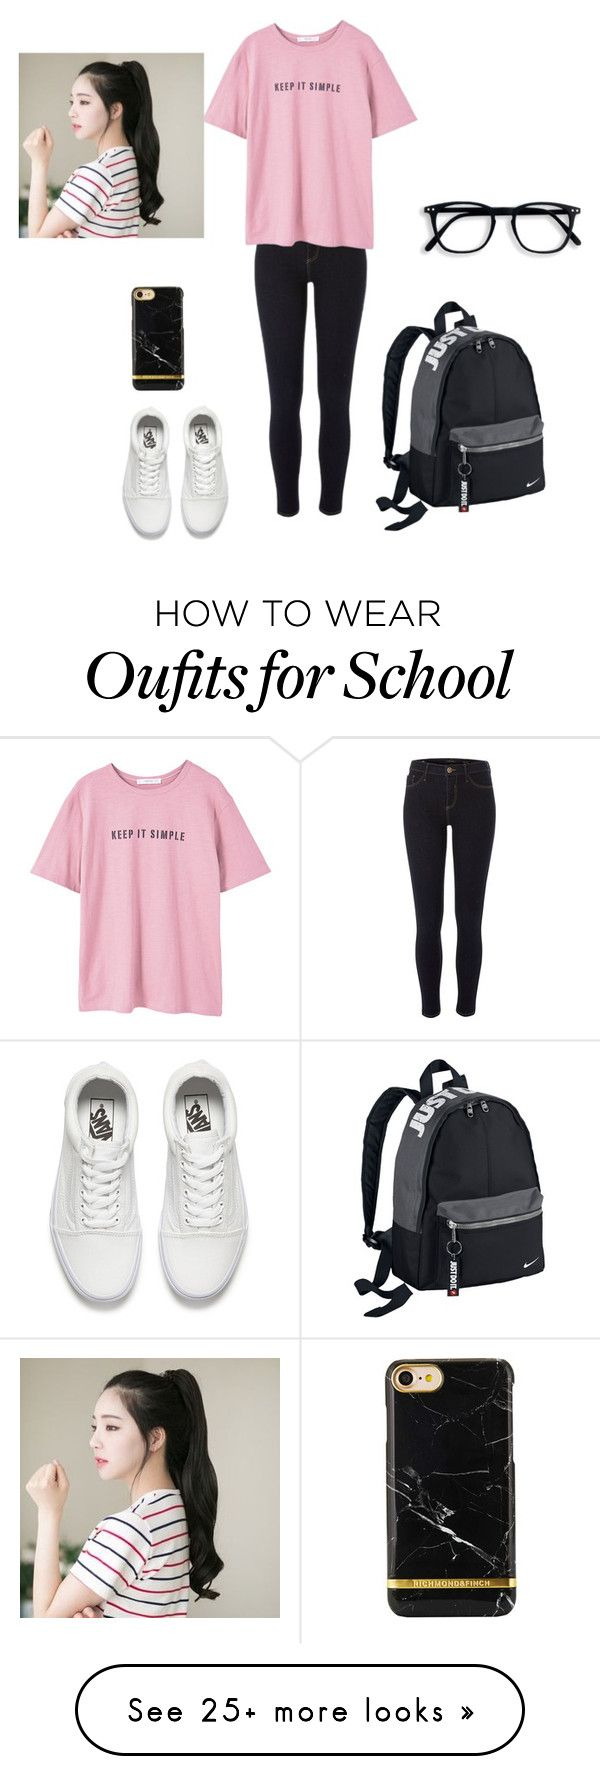 """""""School outfit."""" by isabella-pohatu on Polyvore featuring River Island, MANGO, NIKE, Vans and GABALNARA"""